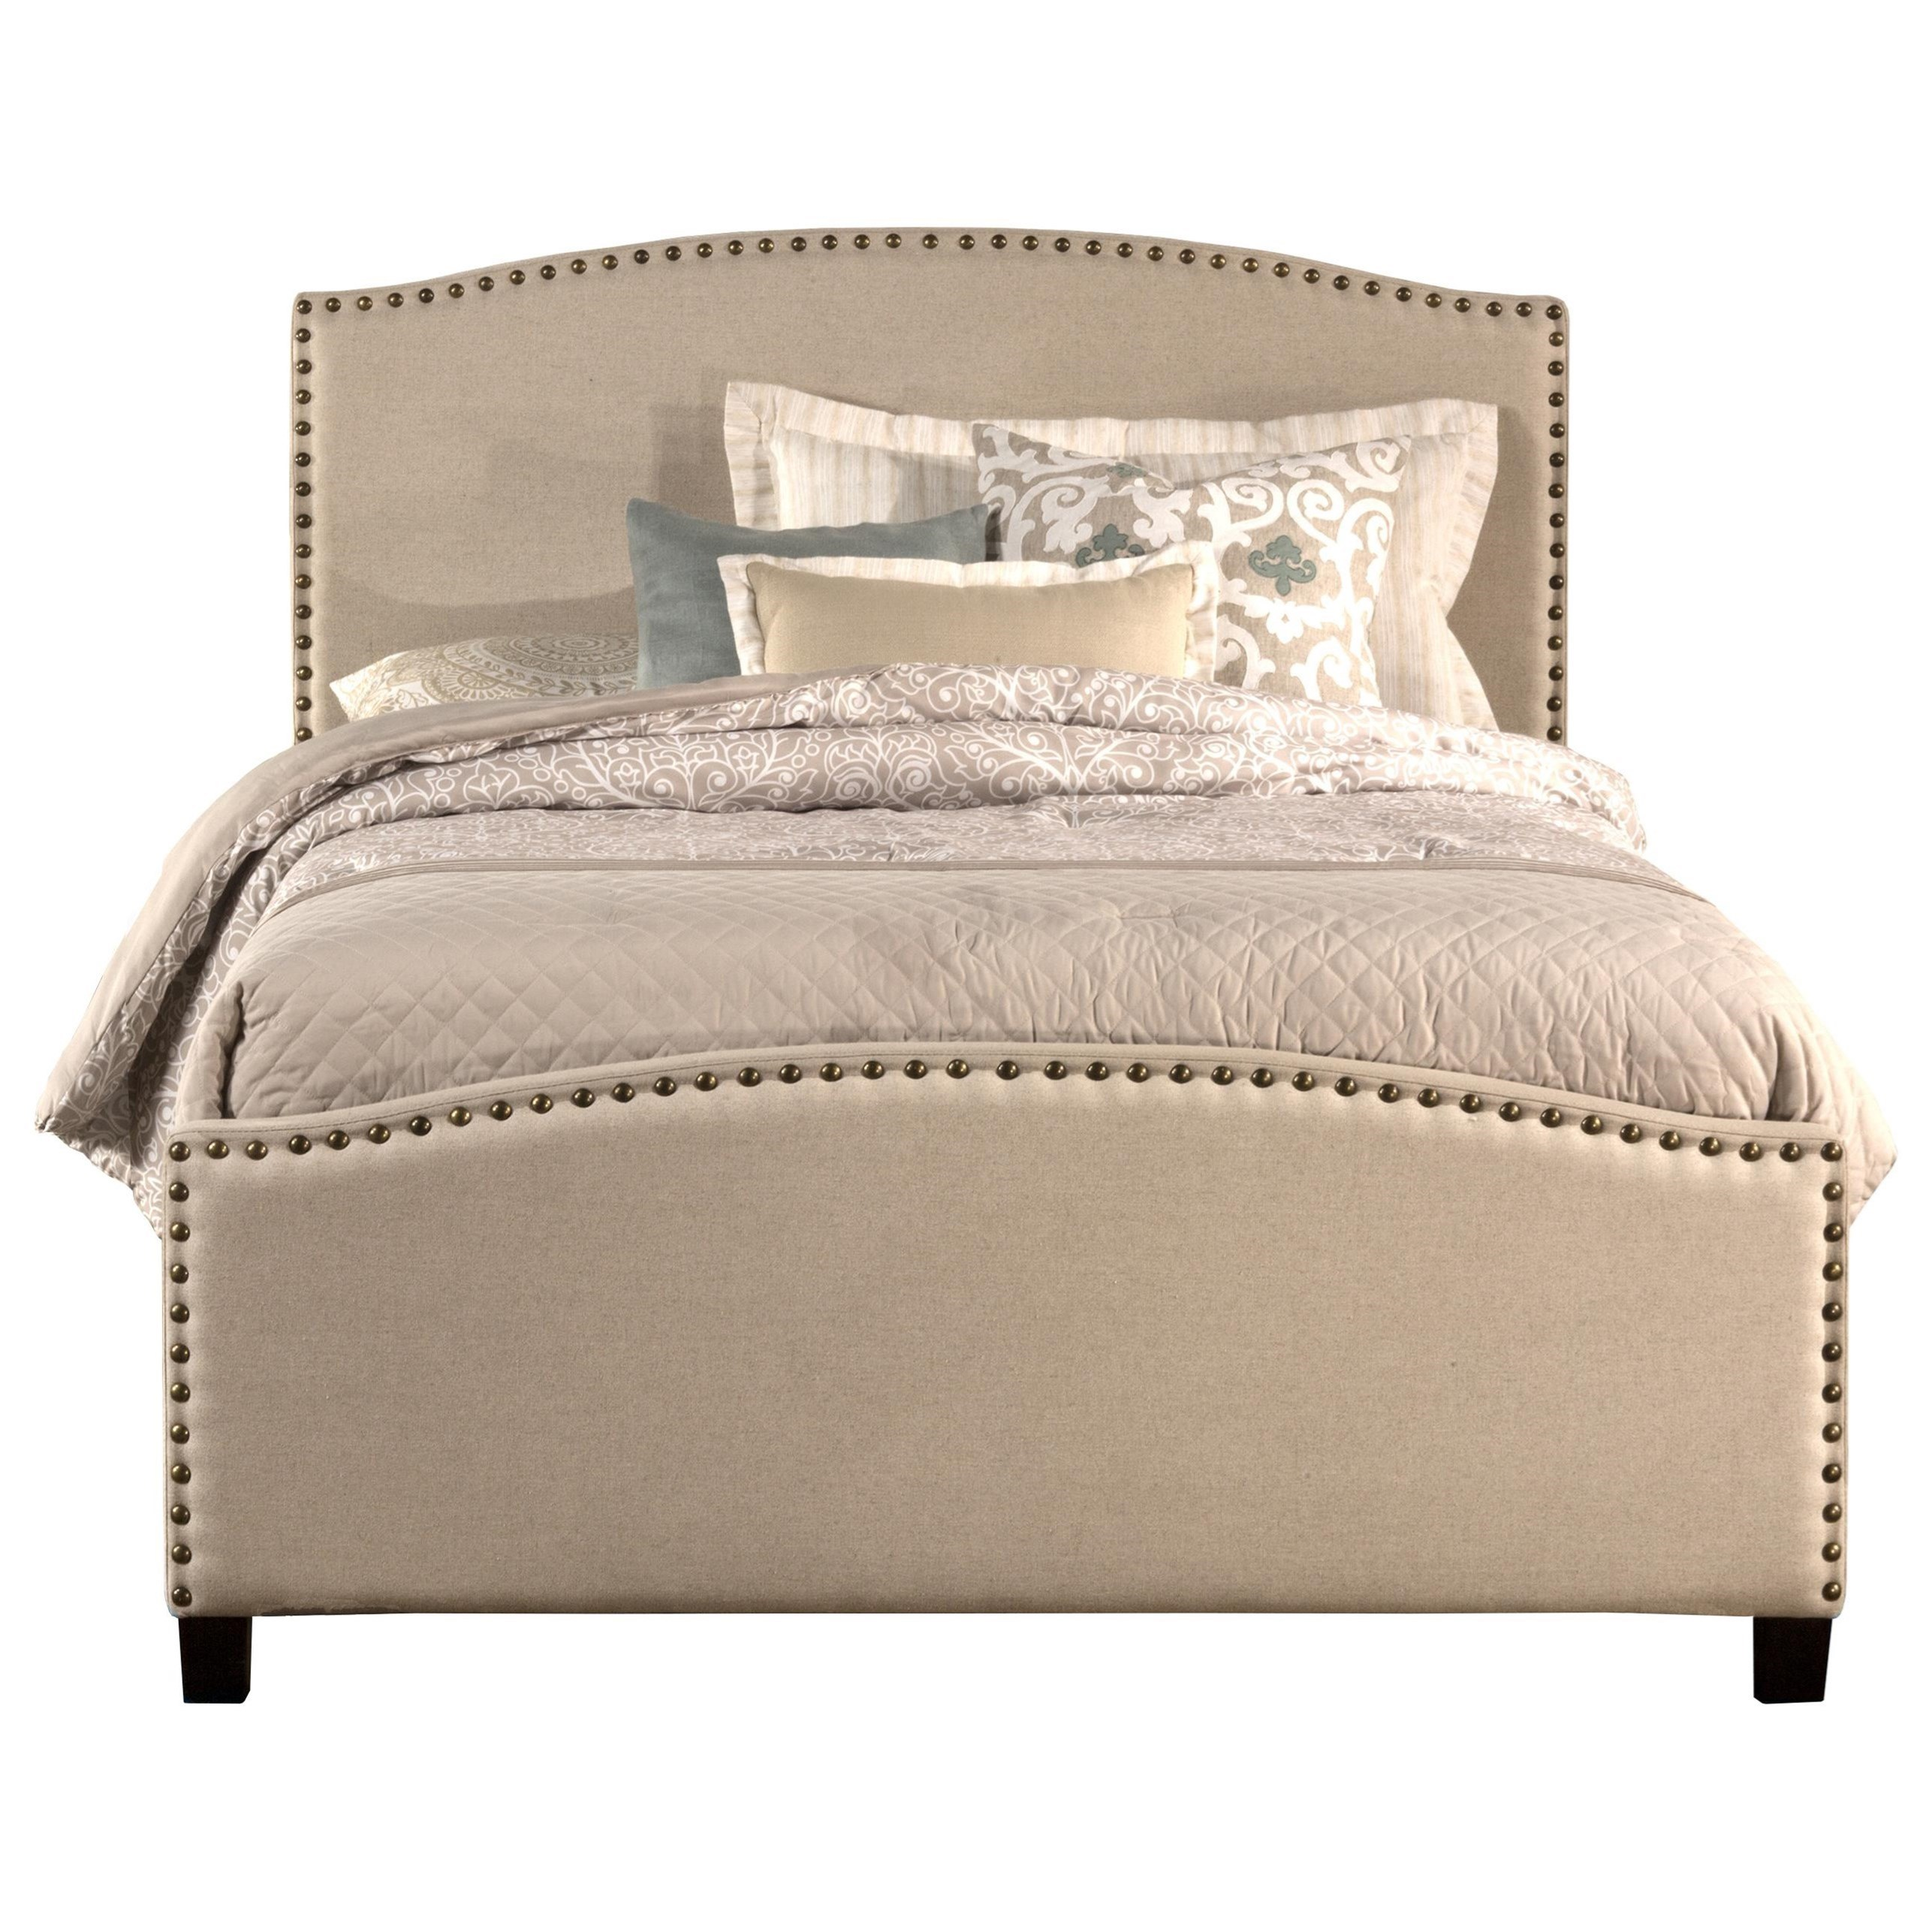 Hillsdale Kerstein Queen Bed Set with Rails - Item Number: 1932BQRT